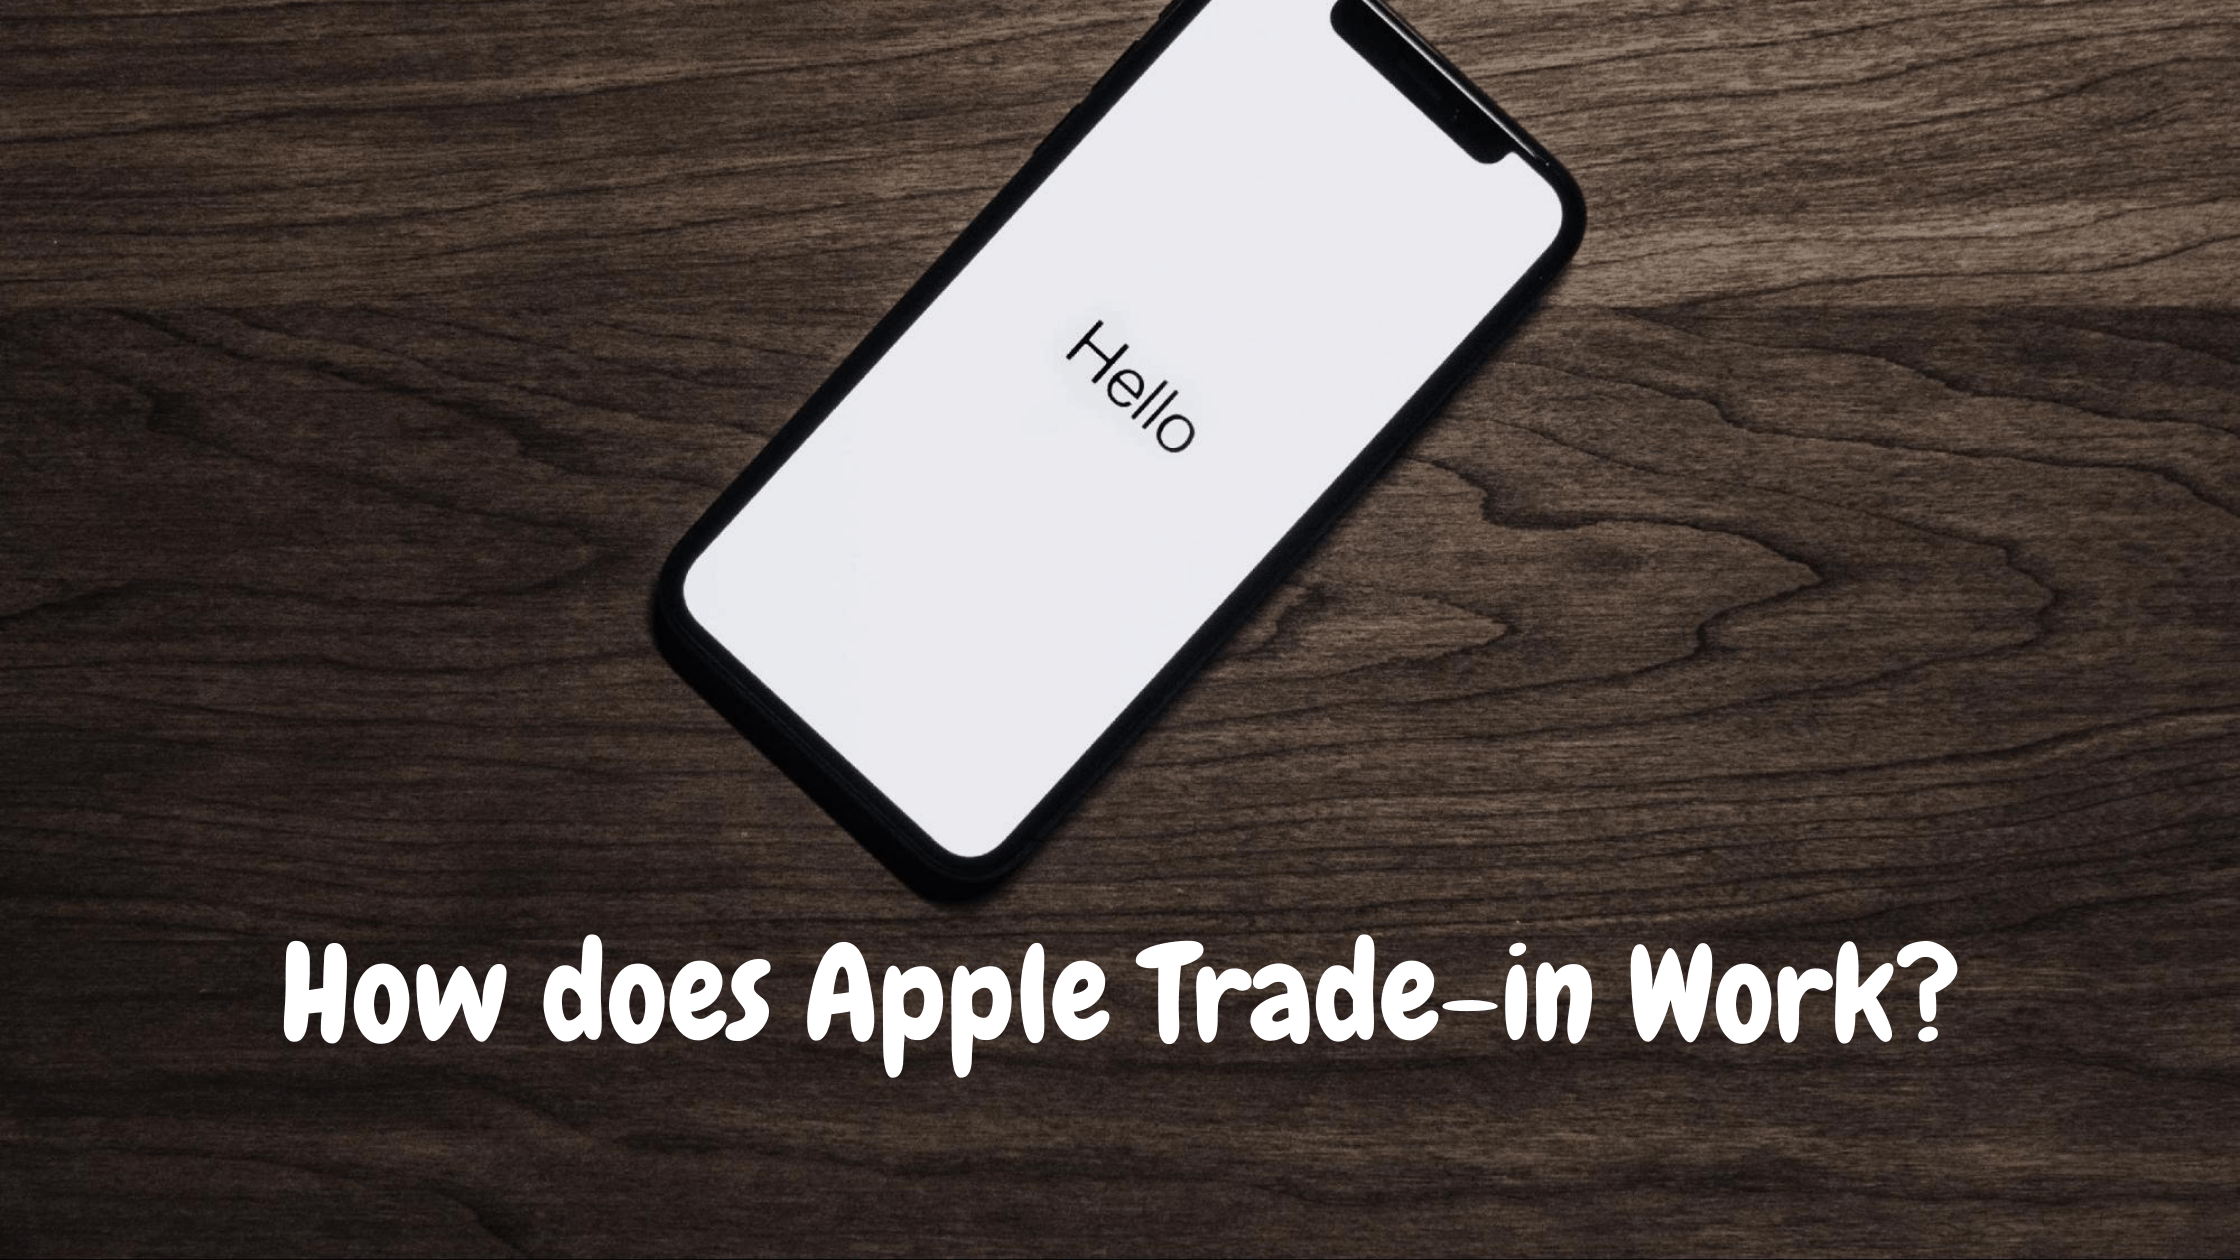 How does Apple Trade-in Work